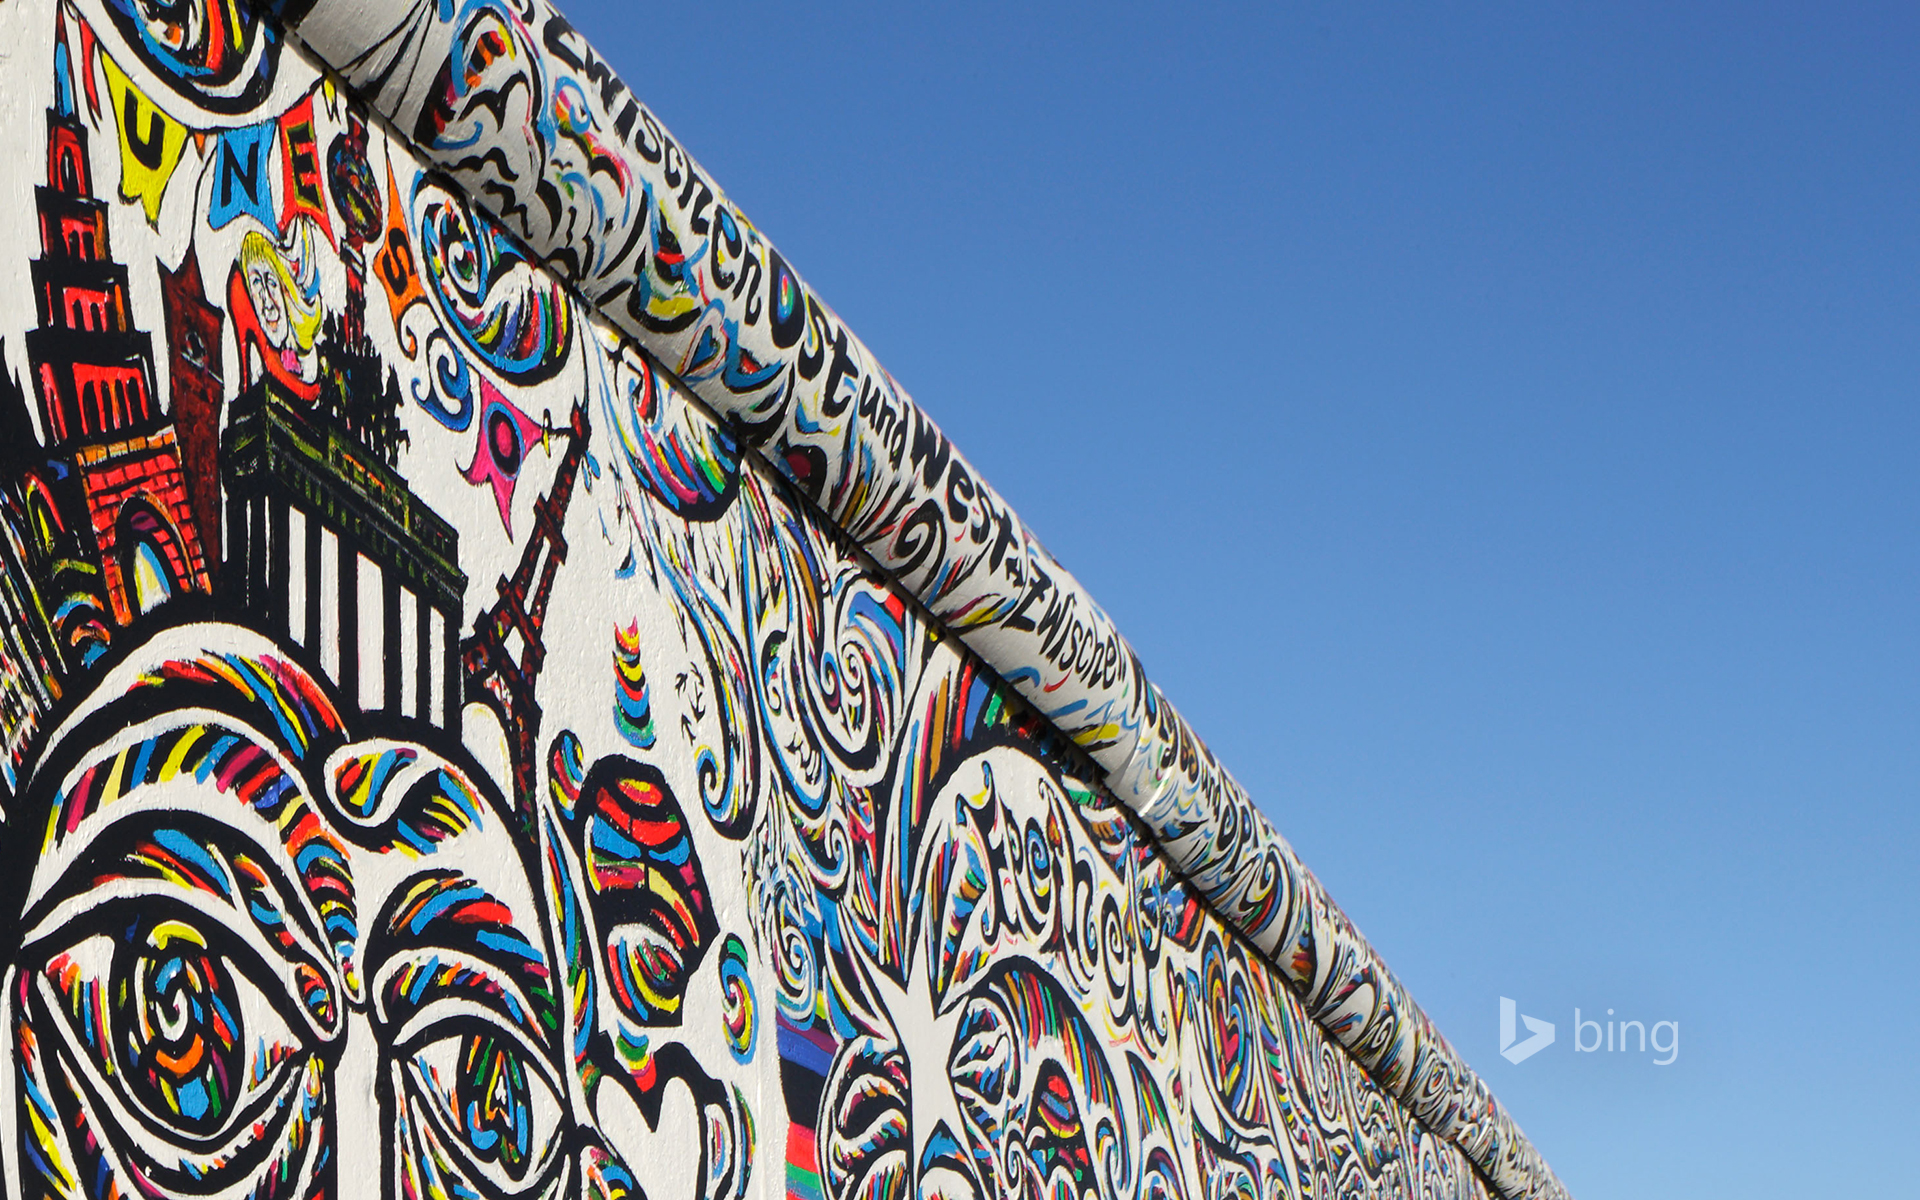 Shamil Gimajew's 'We Are A People' on the renovated East Side Gallery of the Berlin Wall, Berlin, Germany